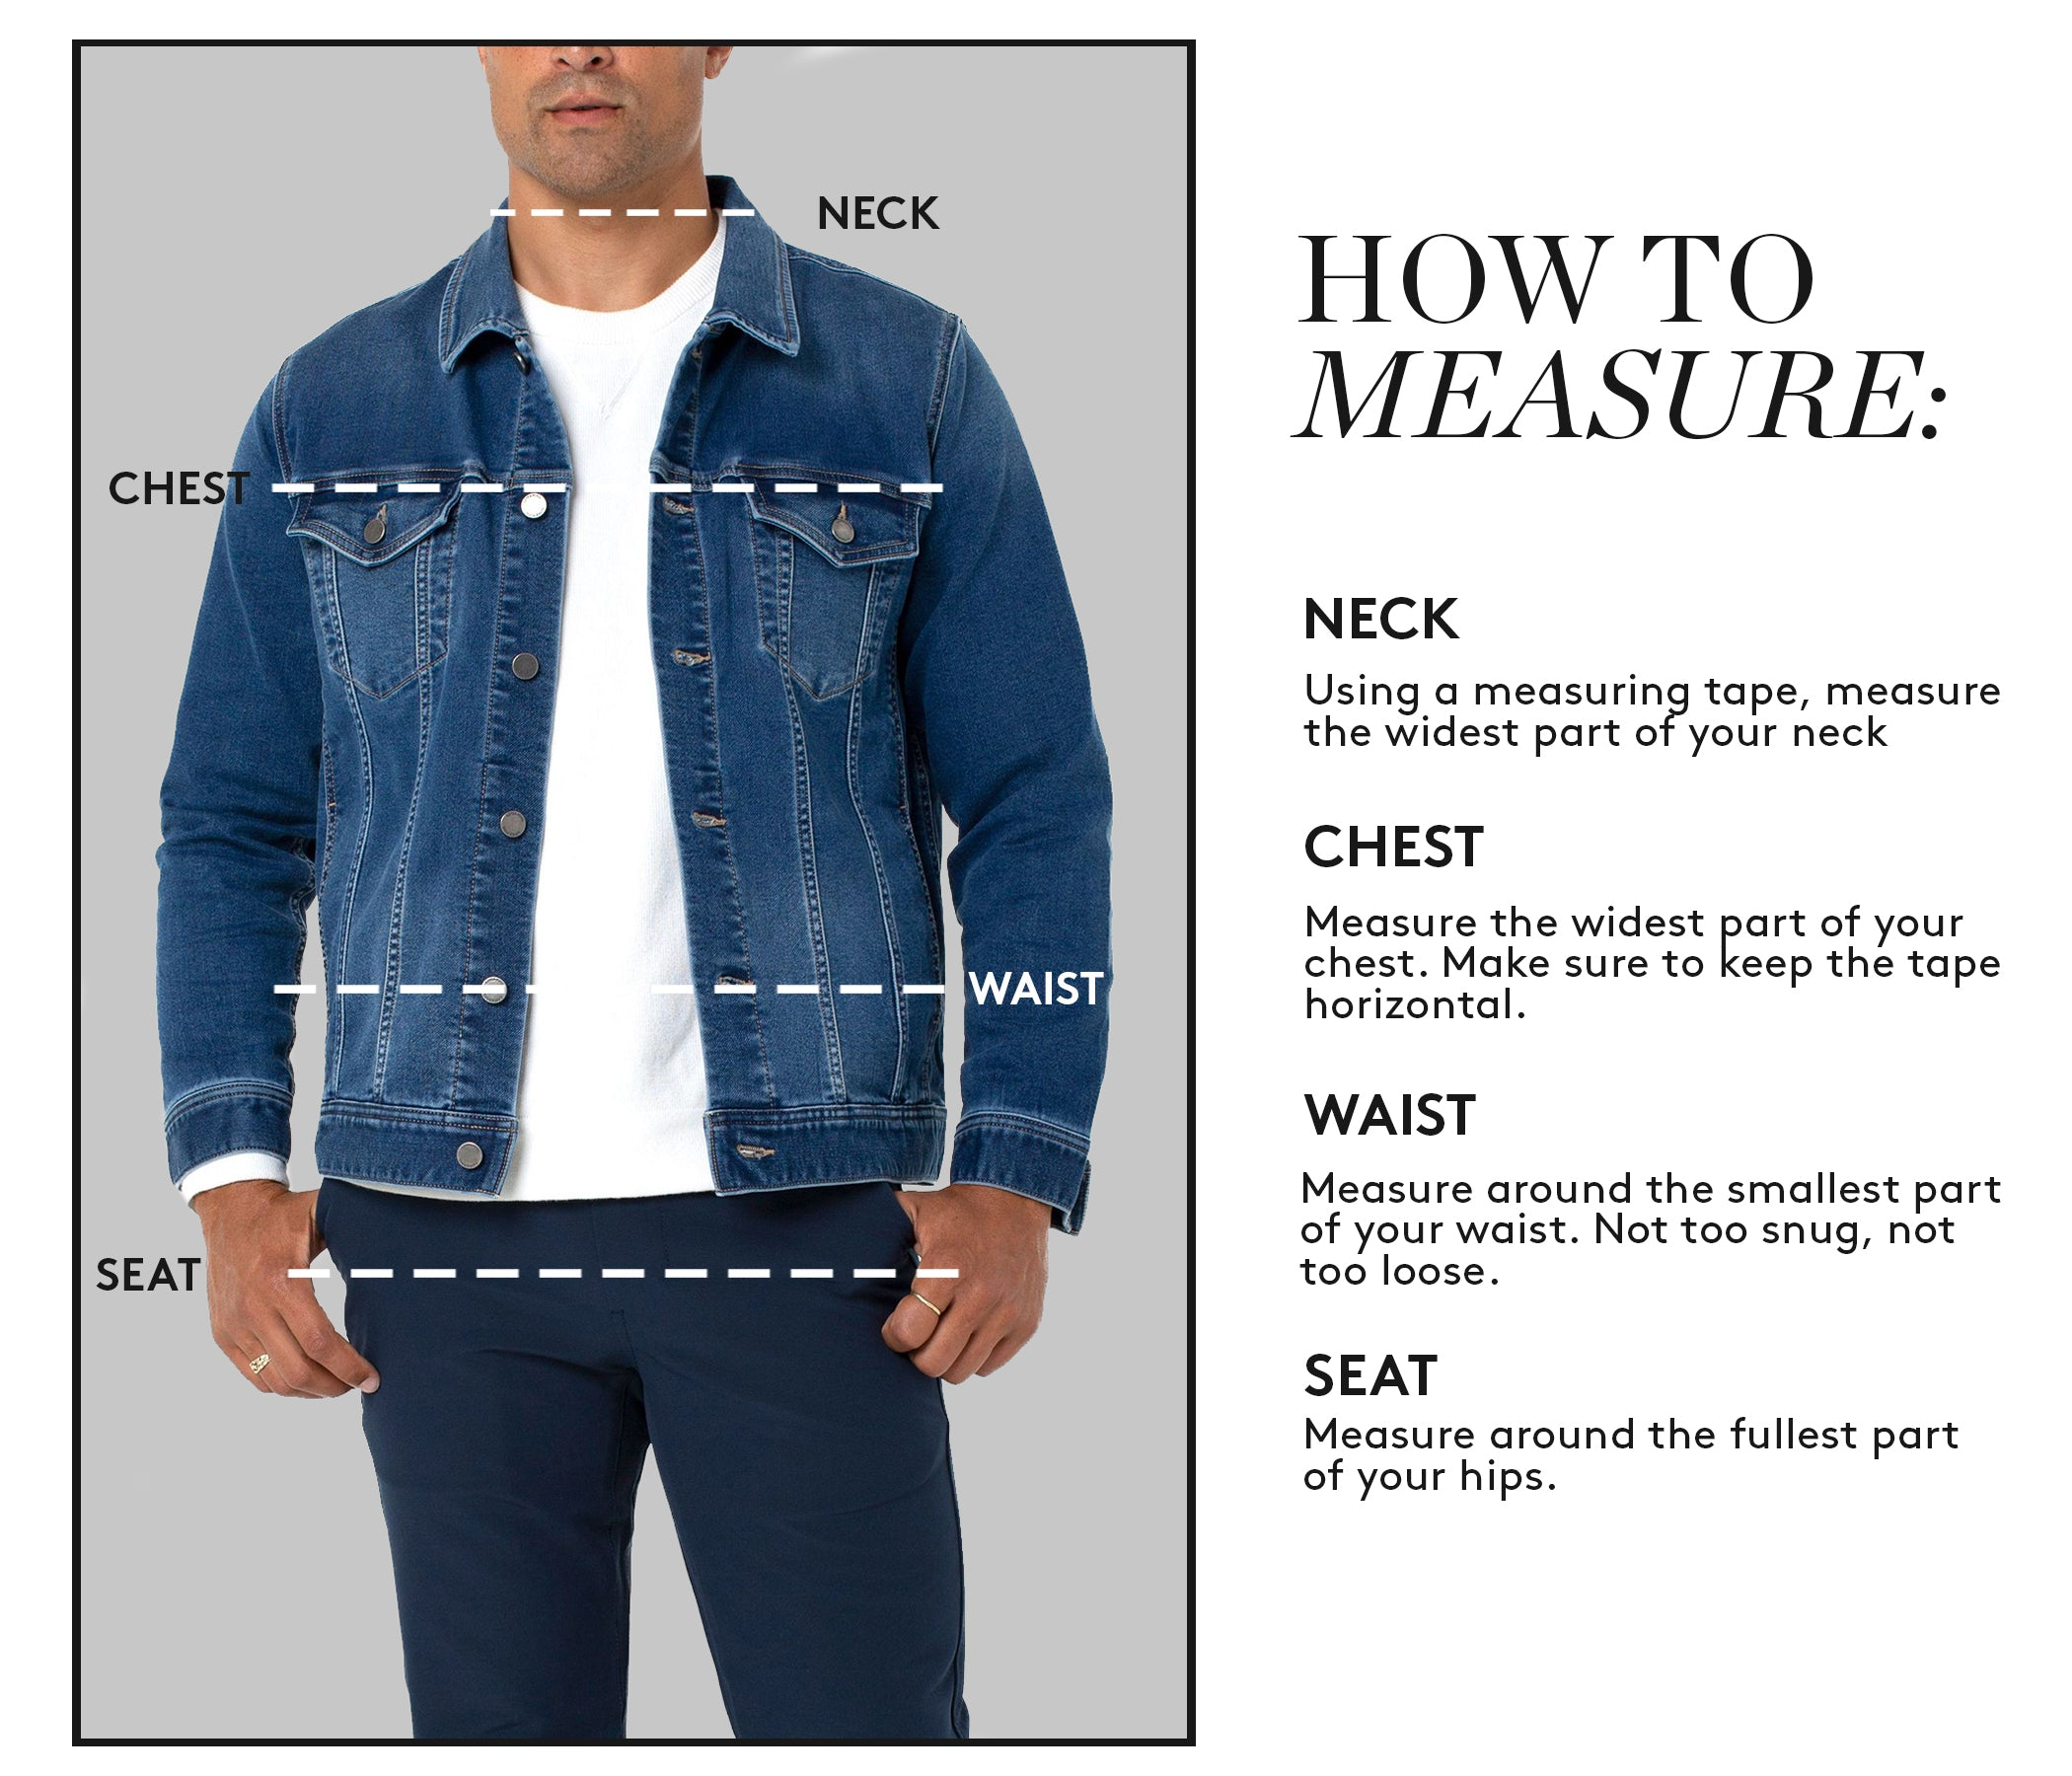 HOW TO MEASURE MENS TOPS/ JACKETS: NECK Using a measuring tape, measure the widest part of your neck. CHEST Measure the widest part of your chest. Make sure to keep the tape horizontal. WAIST: Measure around the smallest part of your waist. Not too snug, not too loose. SEAT: Measure around the fullest part of your hips.